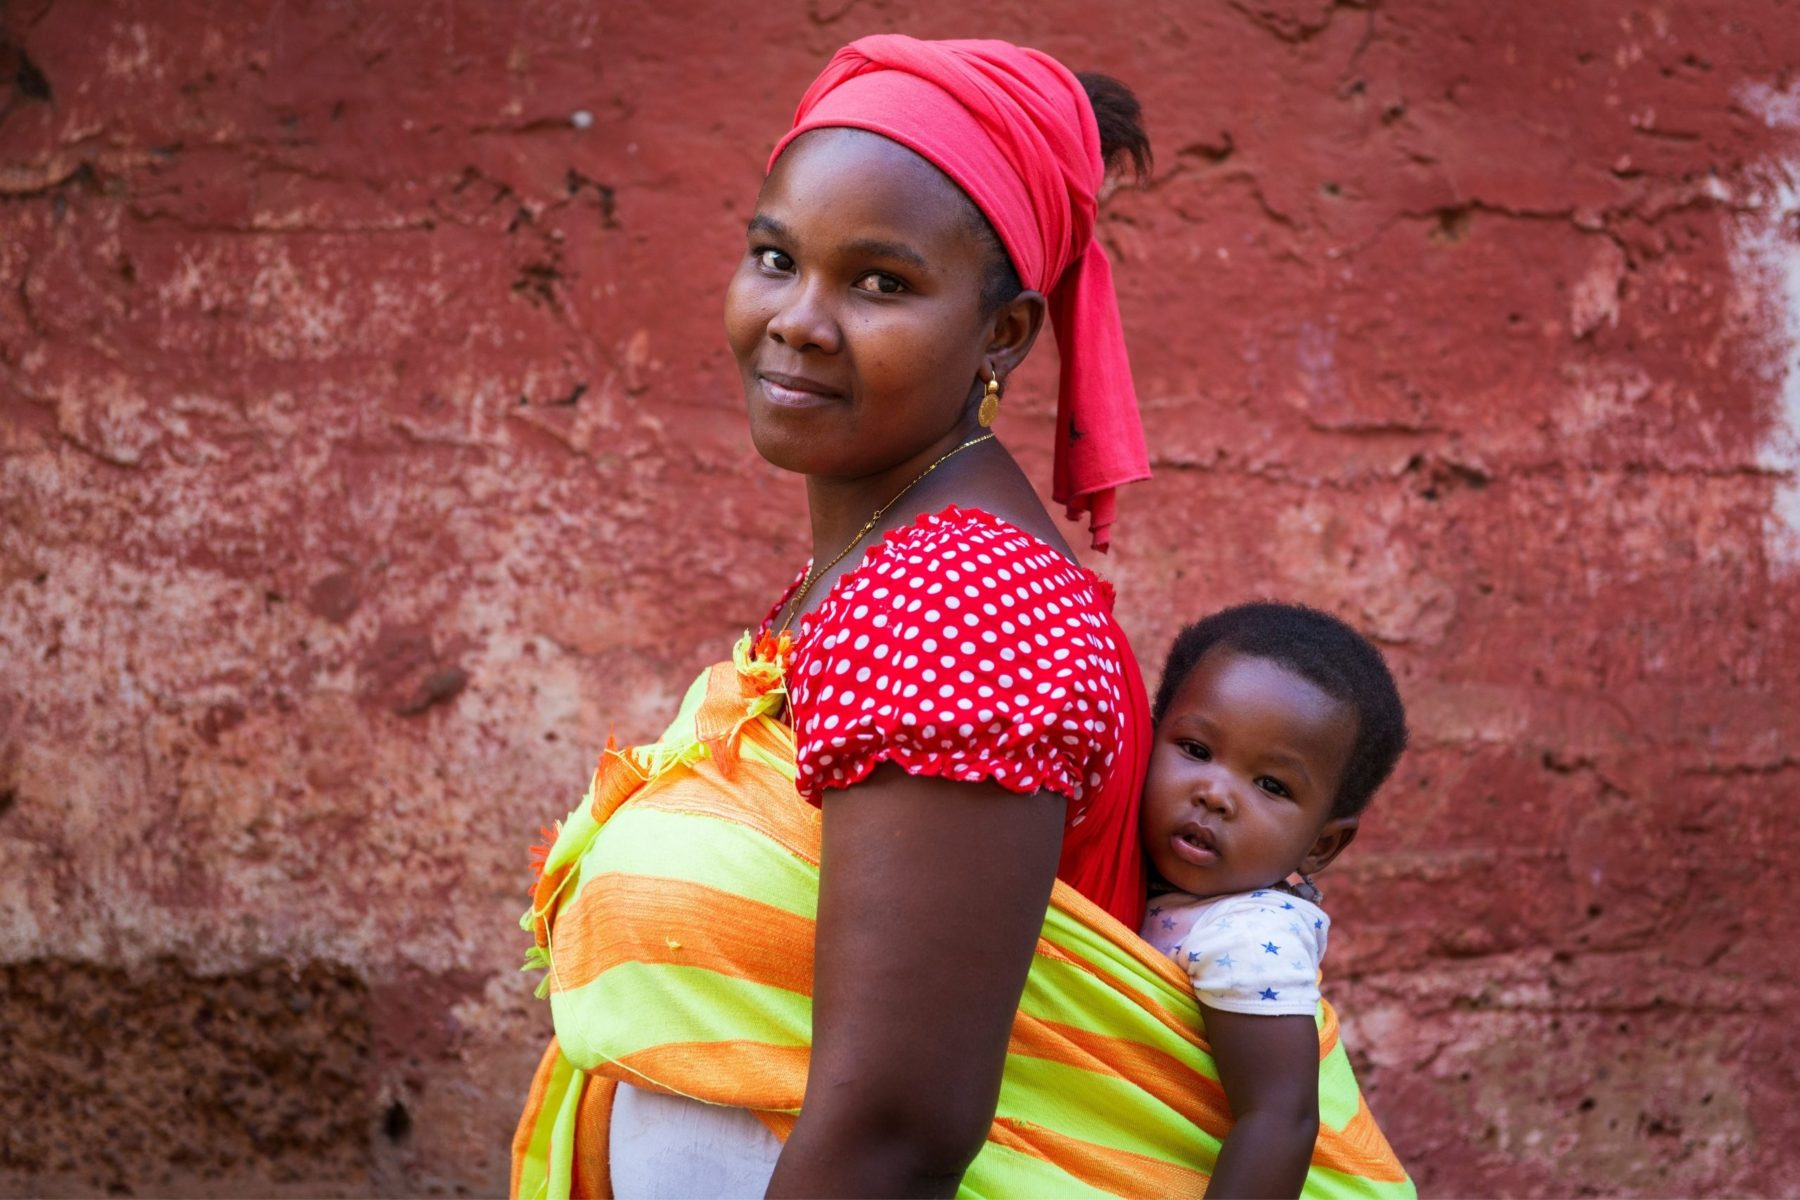 African woman carrying baby on her back